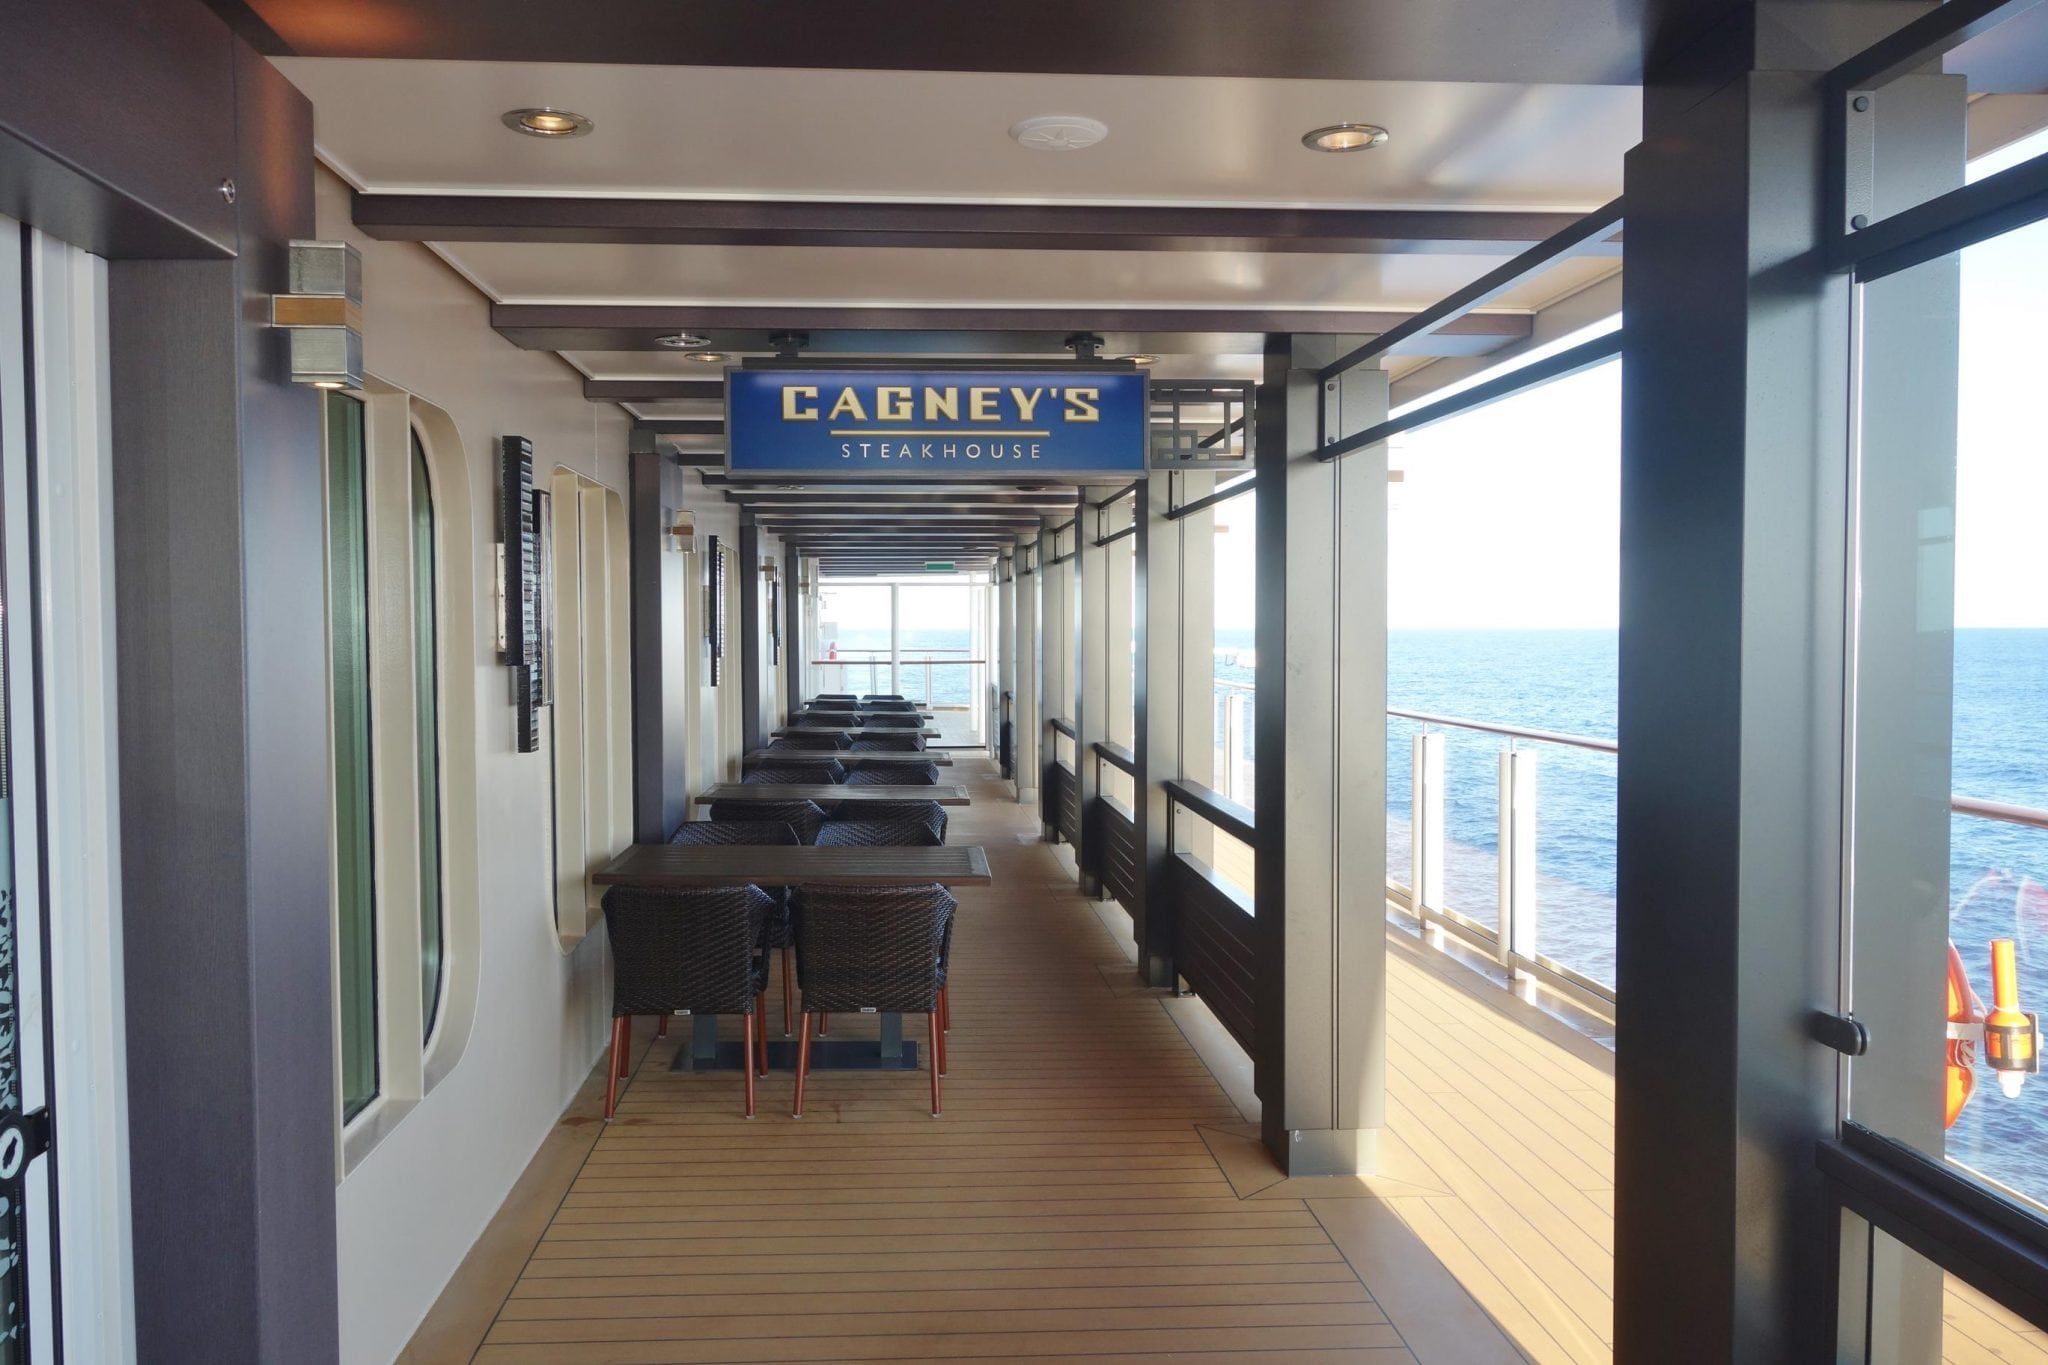 Cagney's Steakhouse on Norwegian Escape